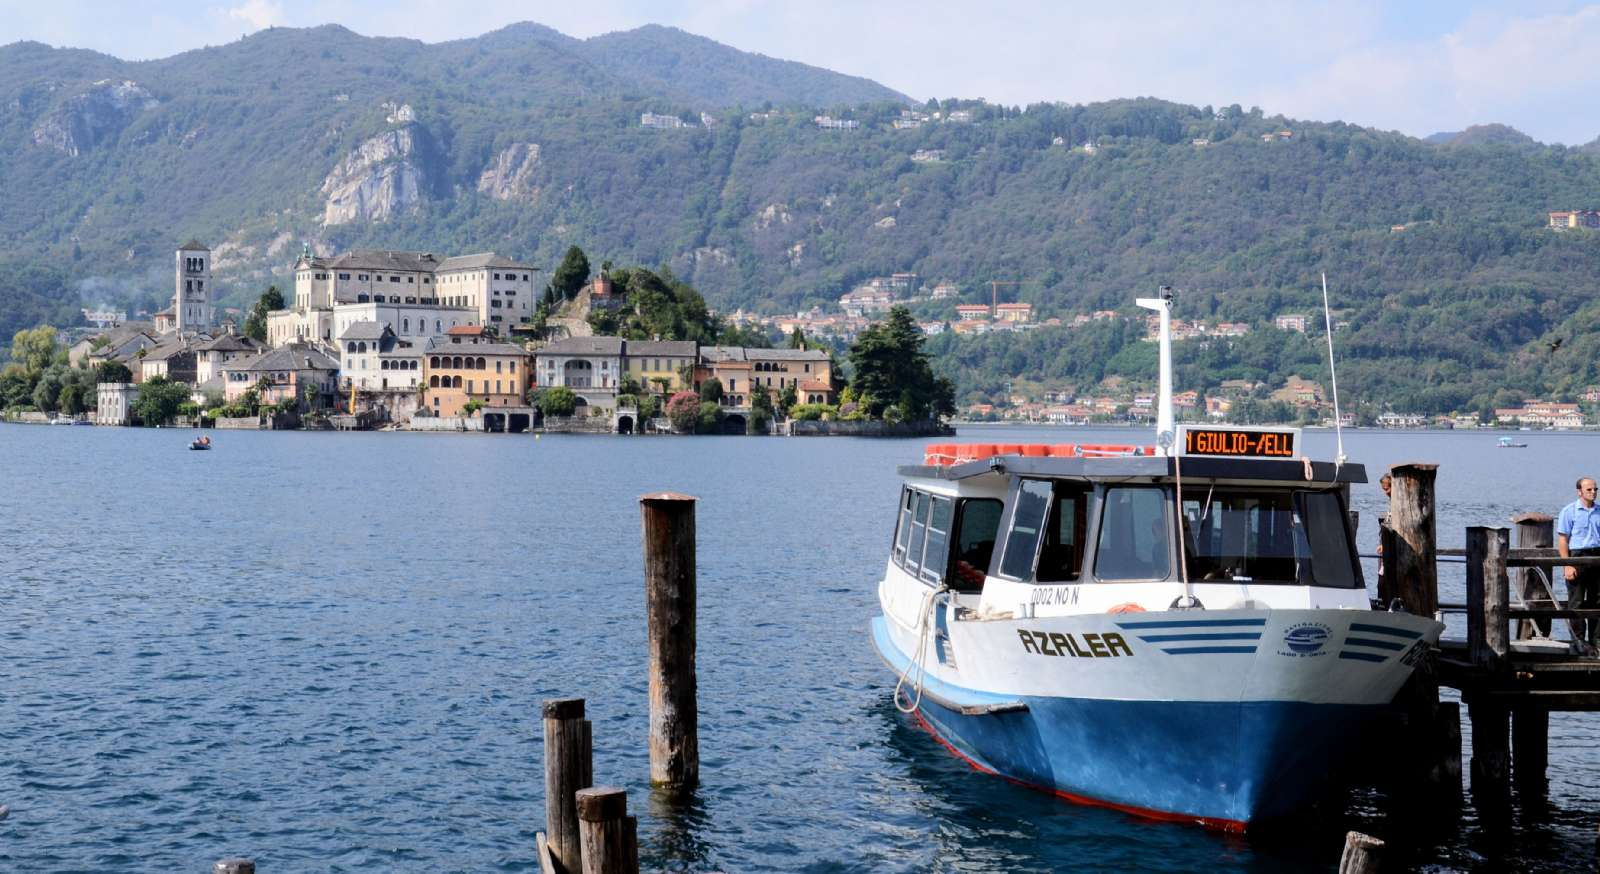 View to the monastery from the town of Orta San Giulio